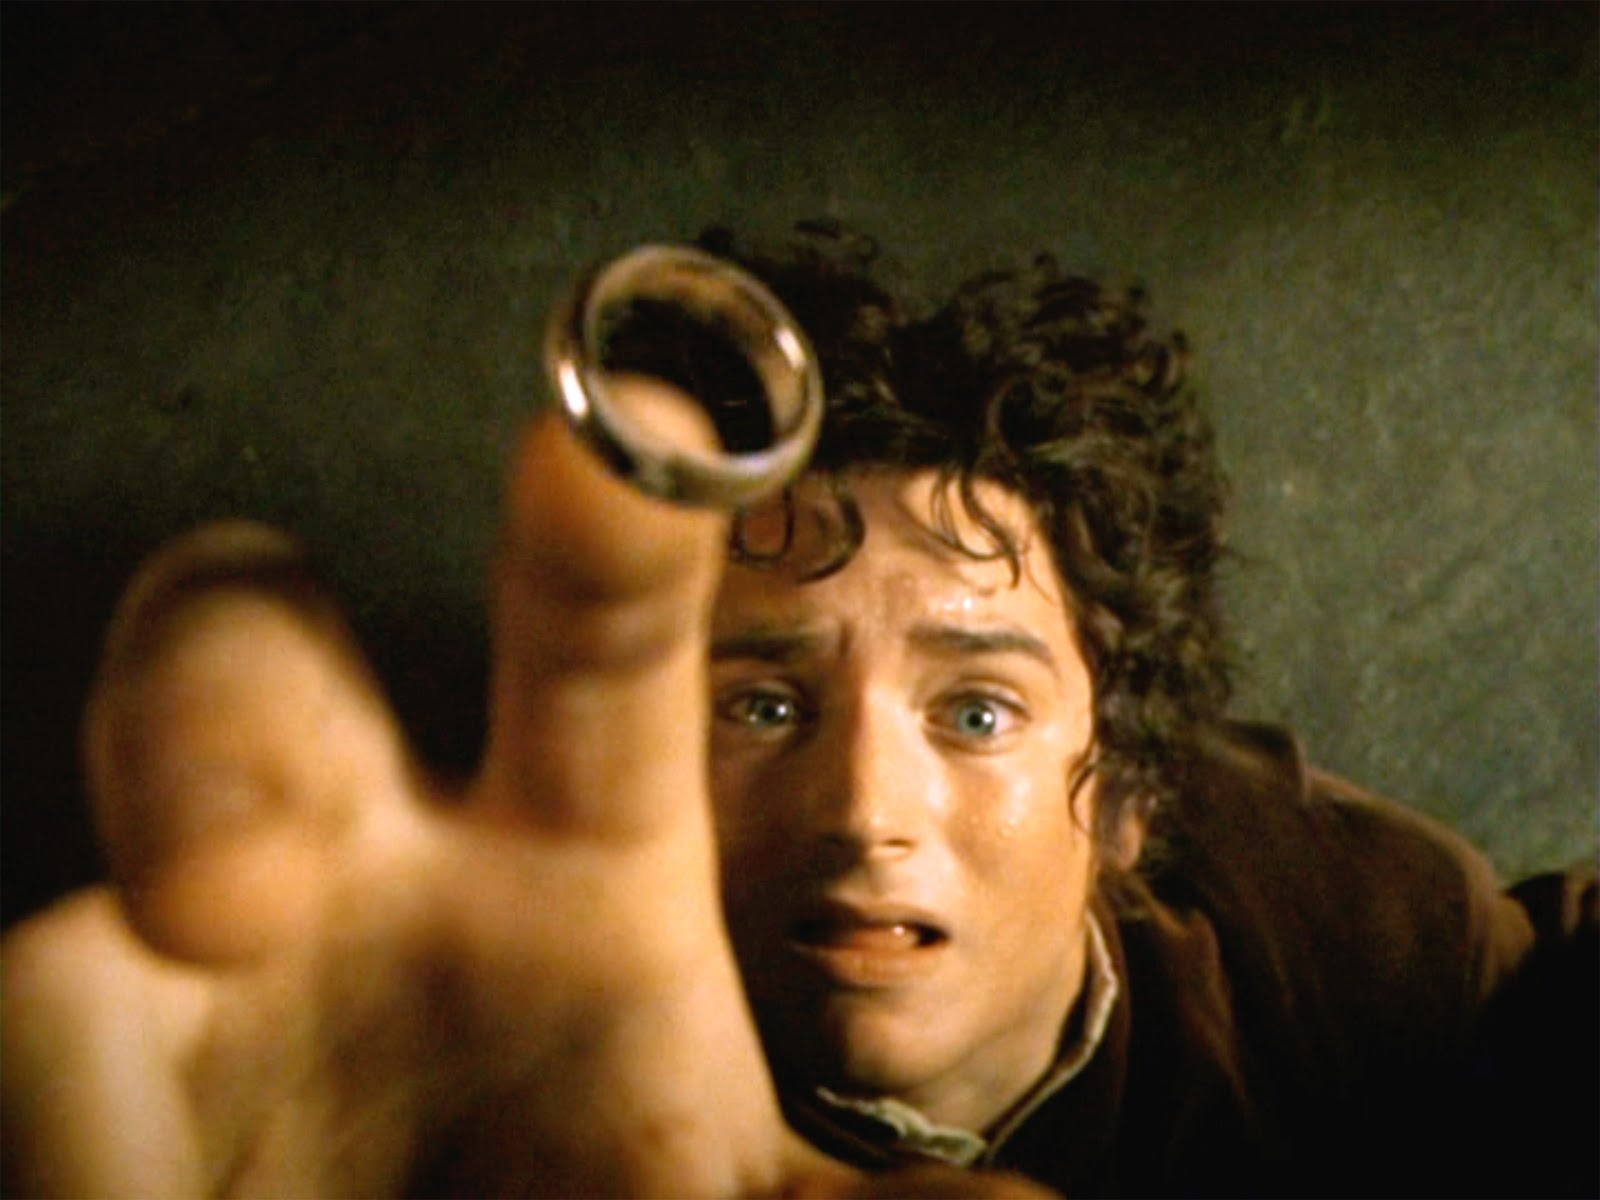 not rings should lord gandalf be like frodo xxx blog wood reasons fundraisers mckellan